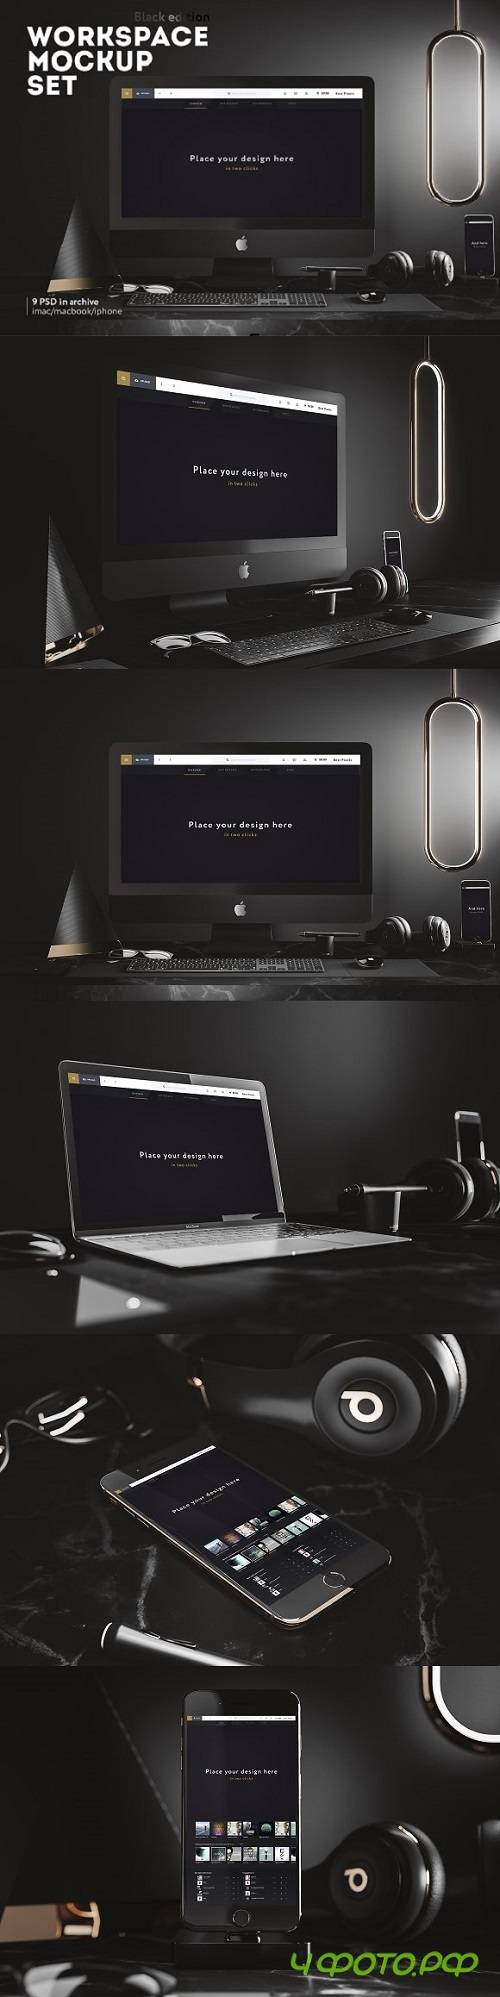 Workspace Mockup Set 7 2153216